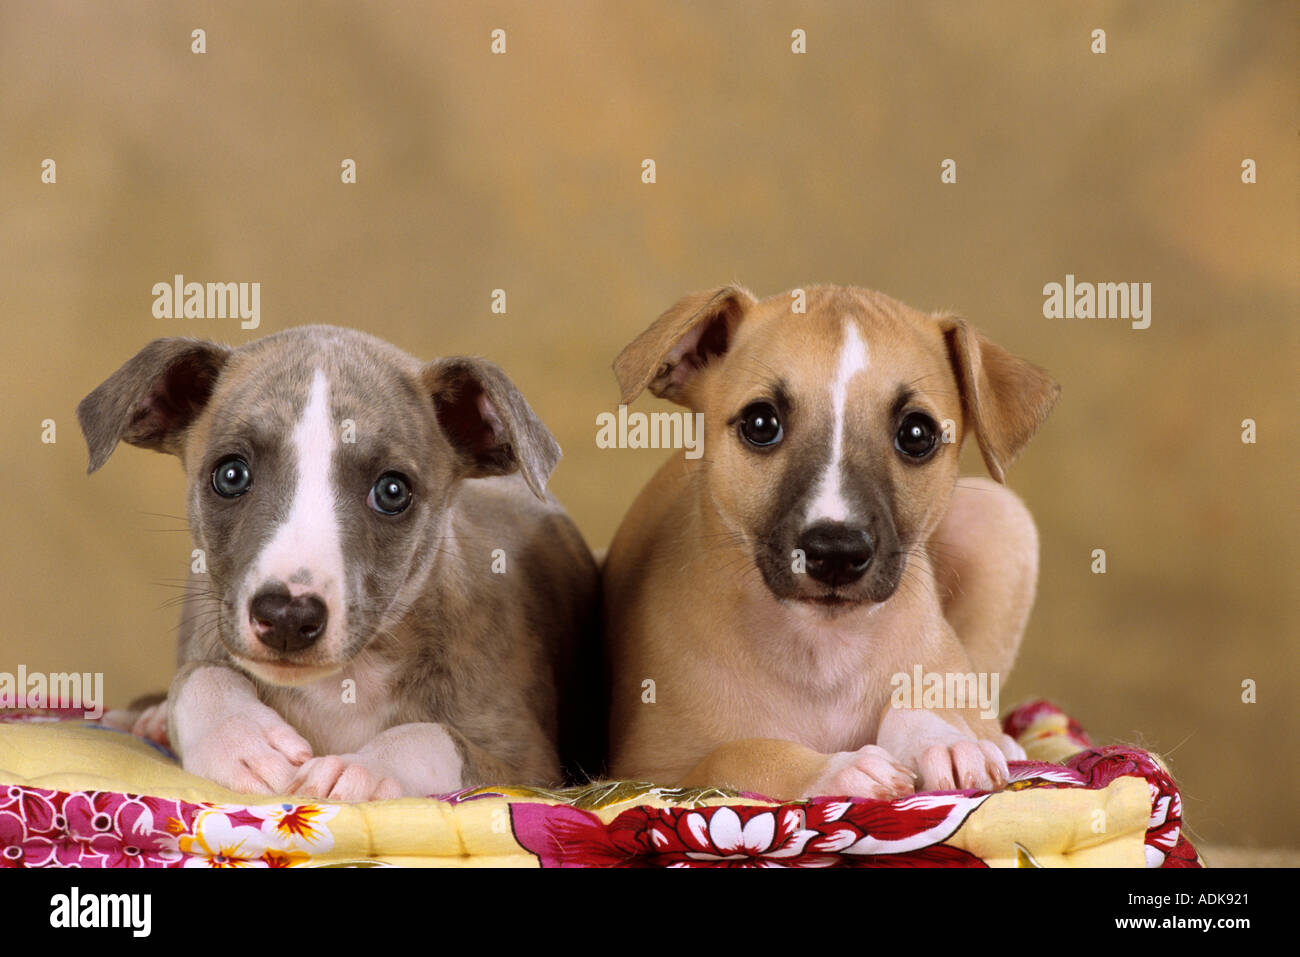 two Whippet dogs - puppies - lying on dog-pillow Stock Photo